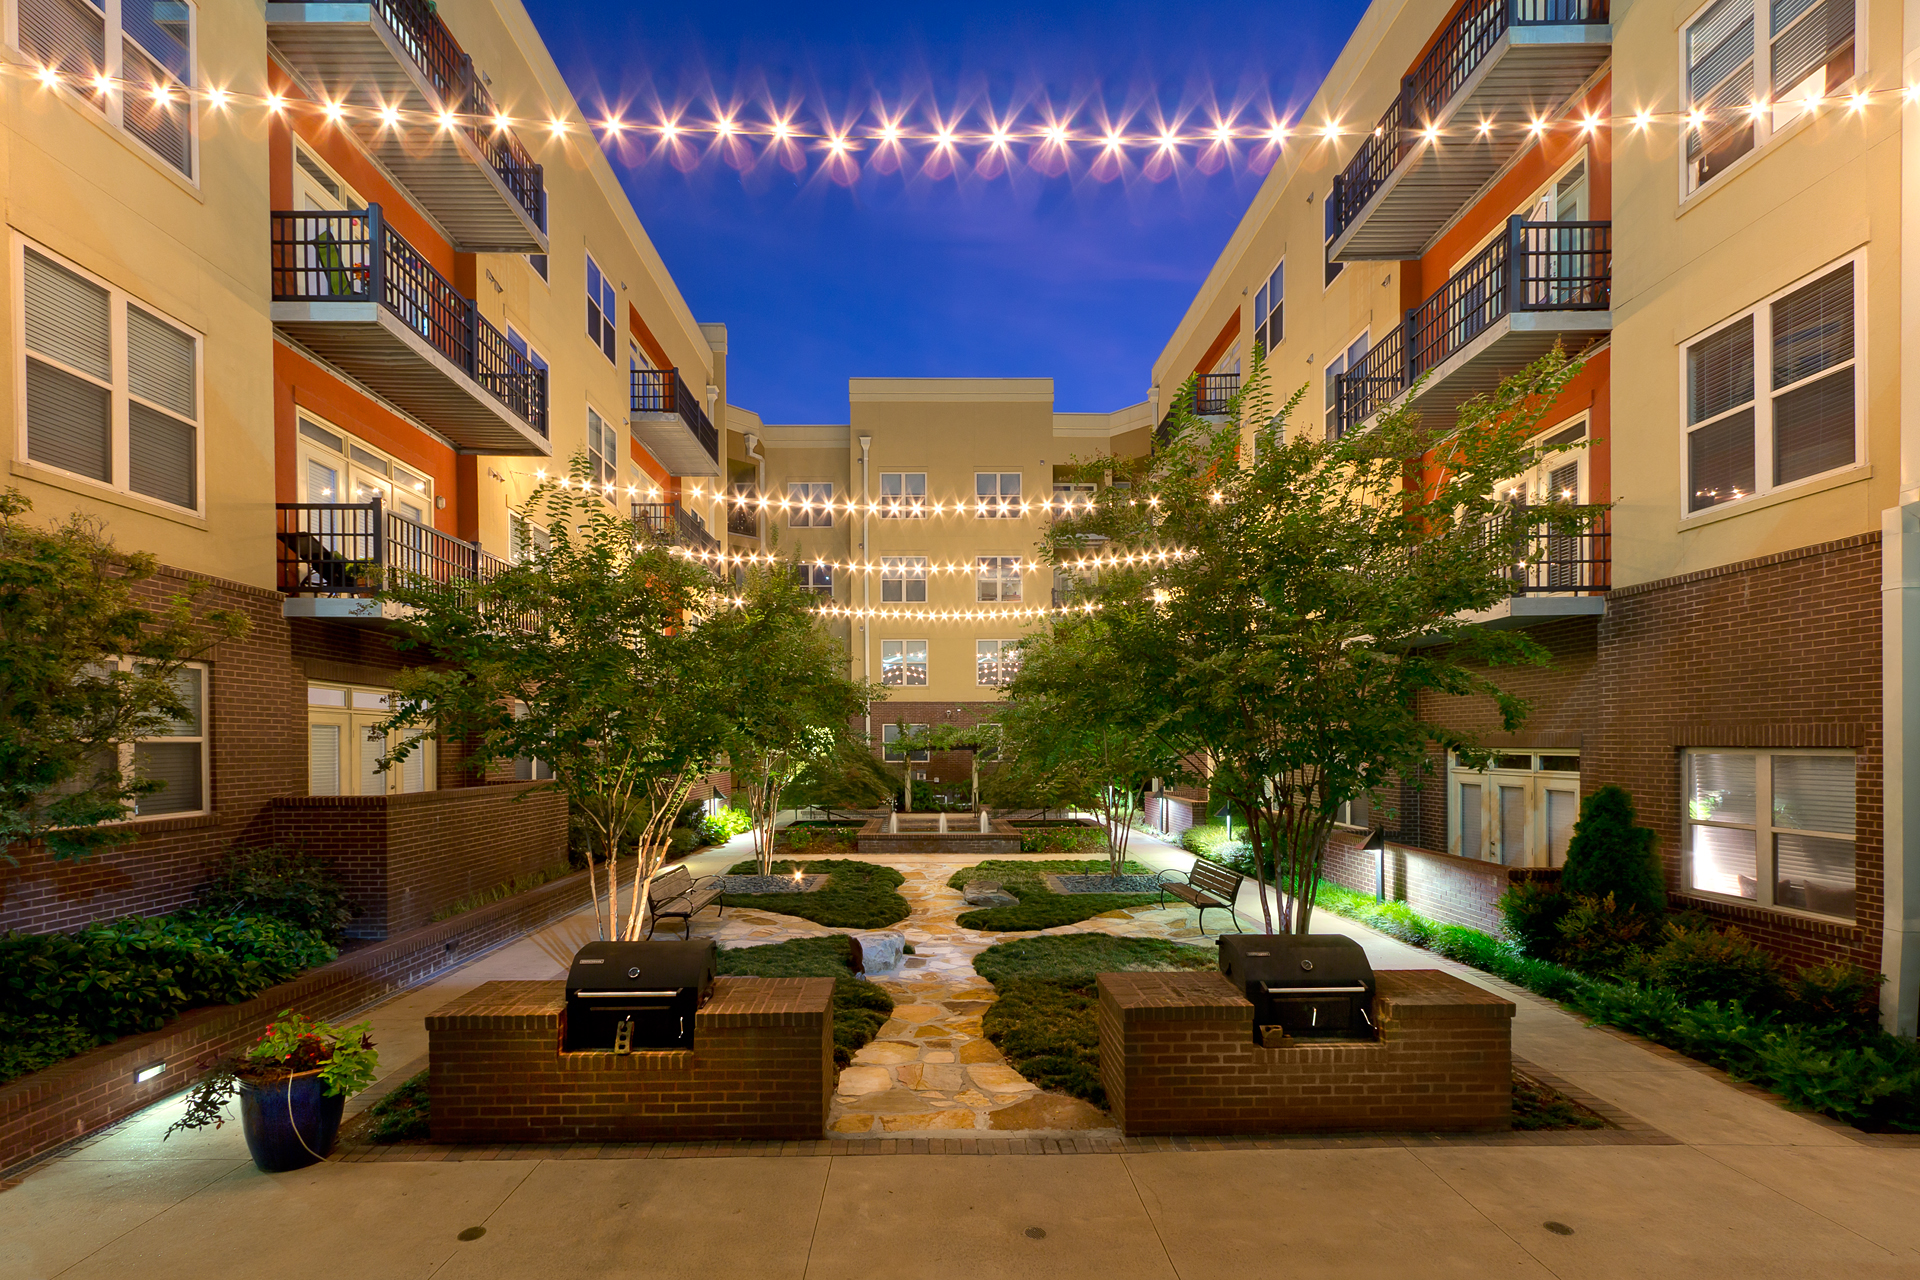 Plaza Garden Apartments